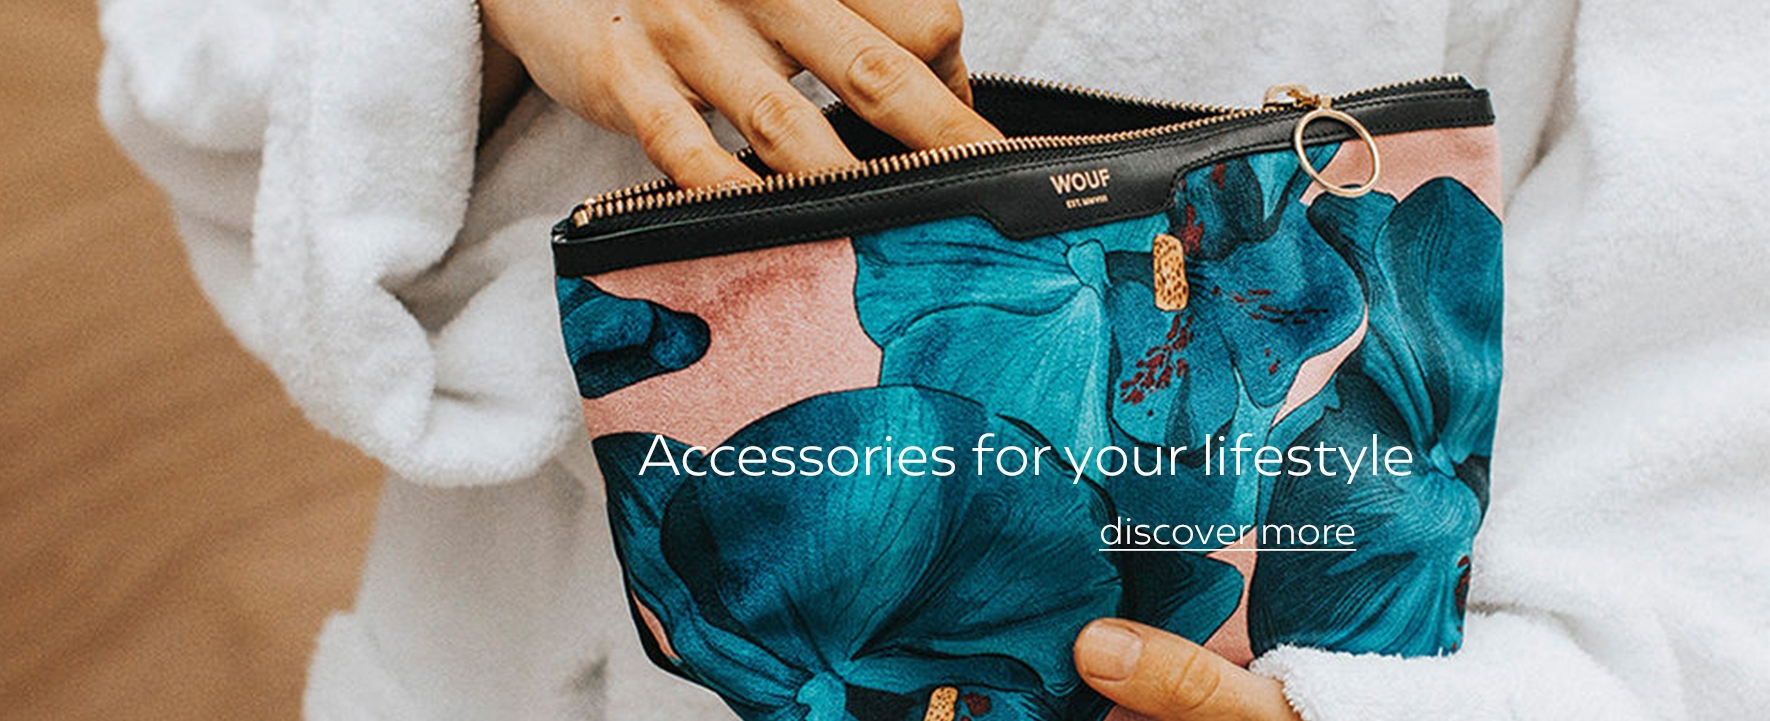 Wouf accessories